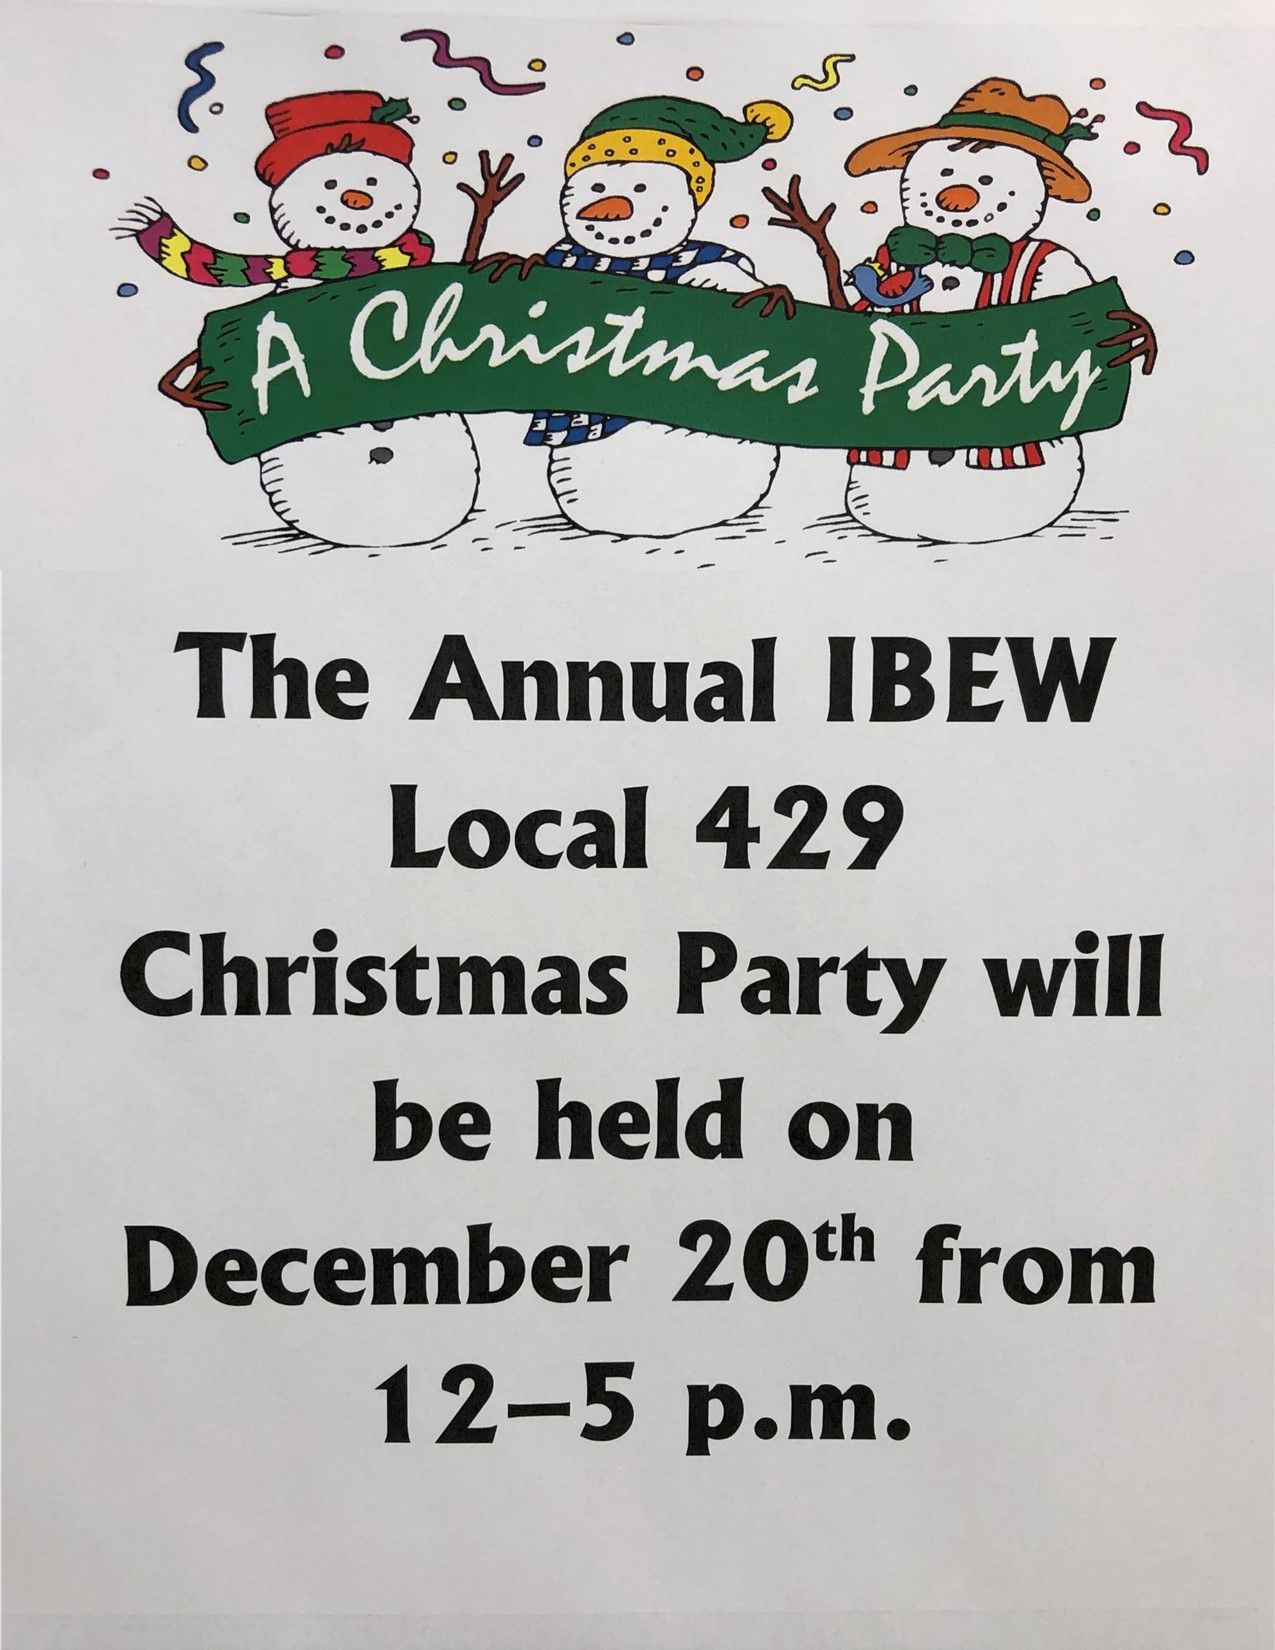 https://www.ibew429.org/Uploads/UploadedFiles/Christmas_Party